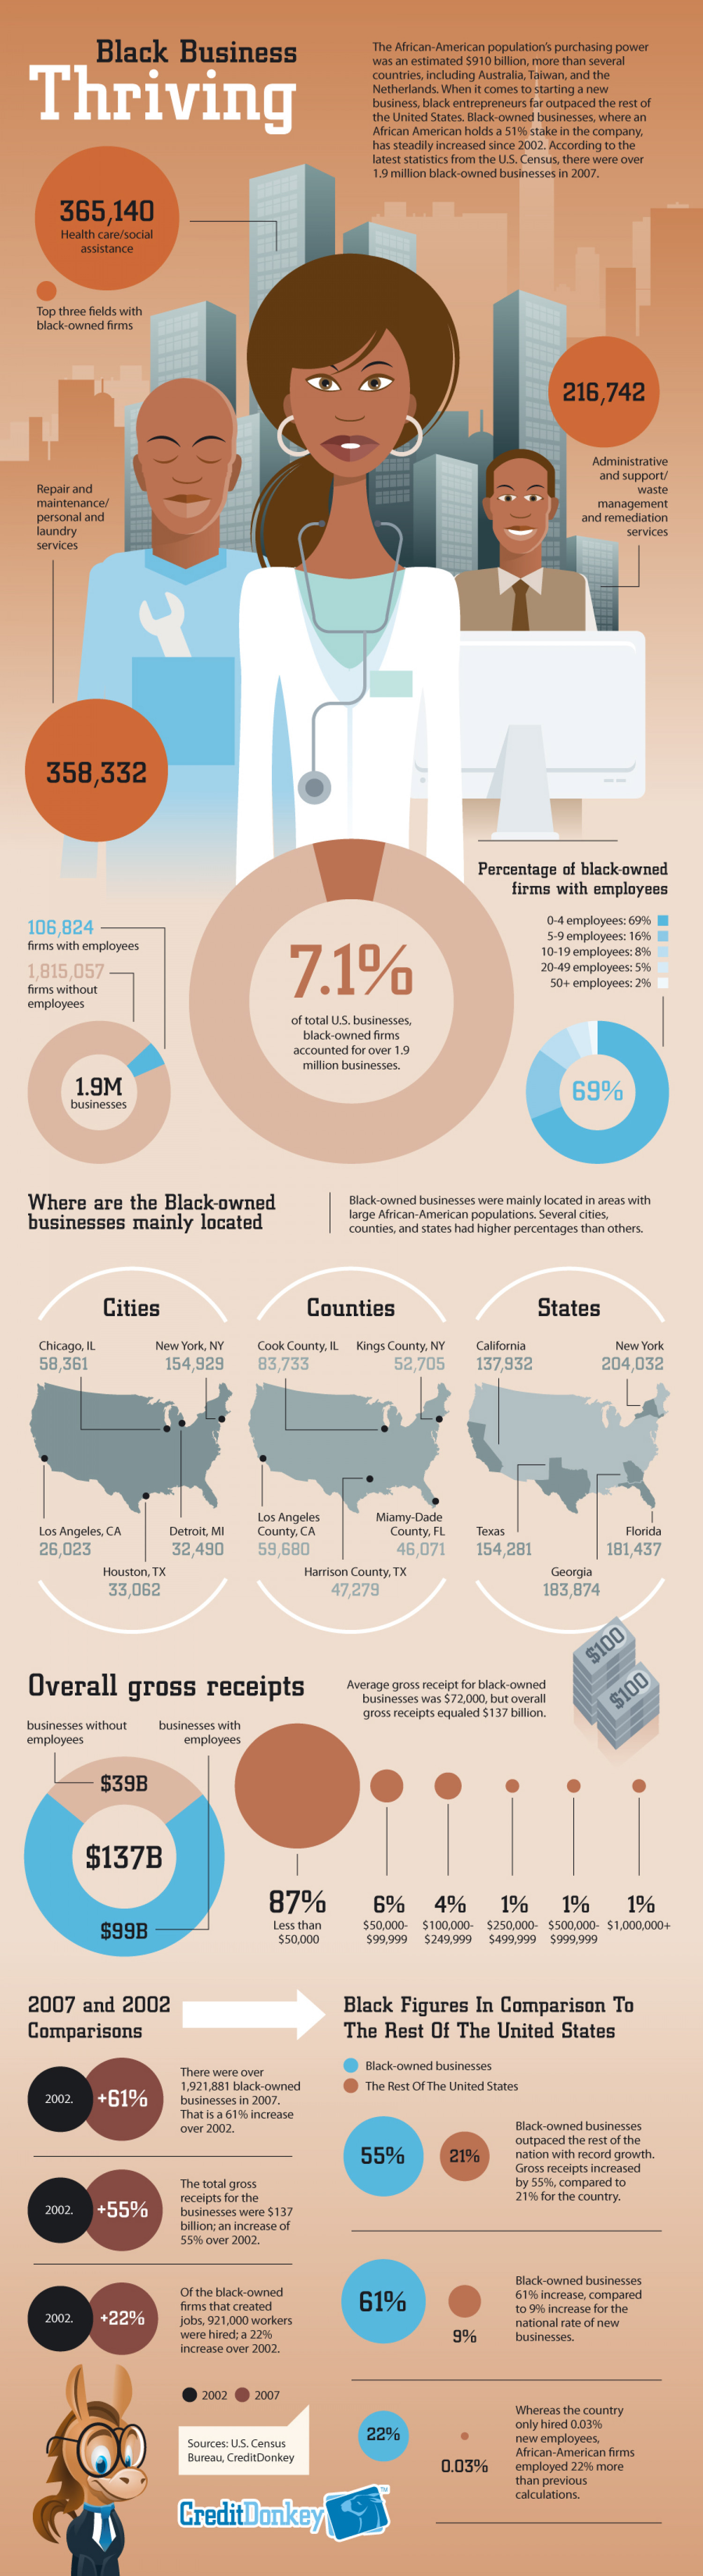 Black Business Thriving Infographic